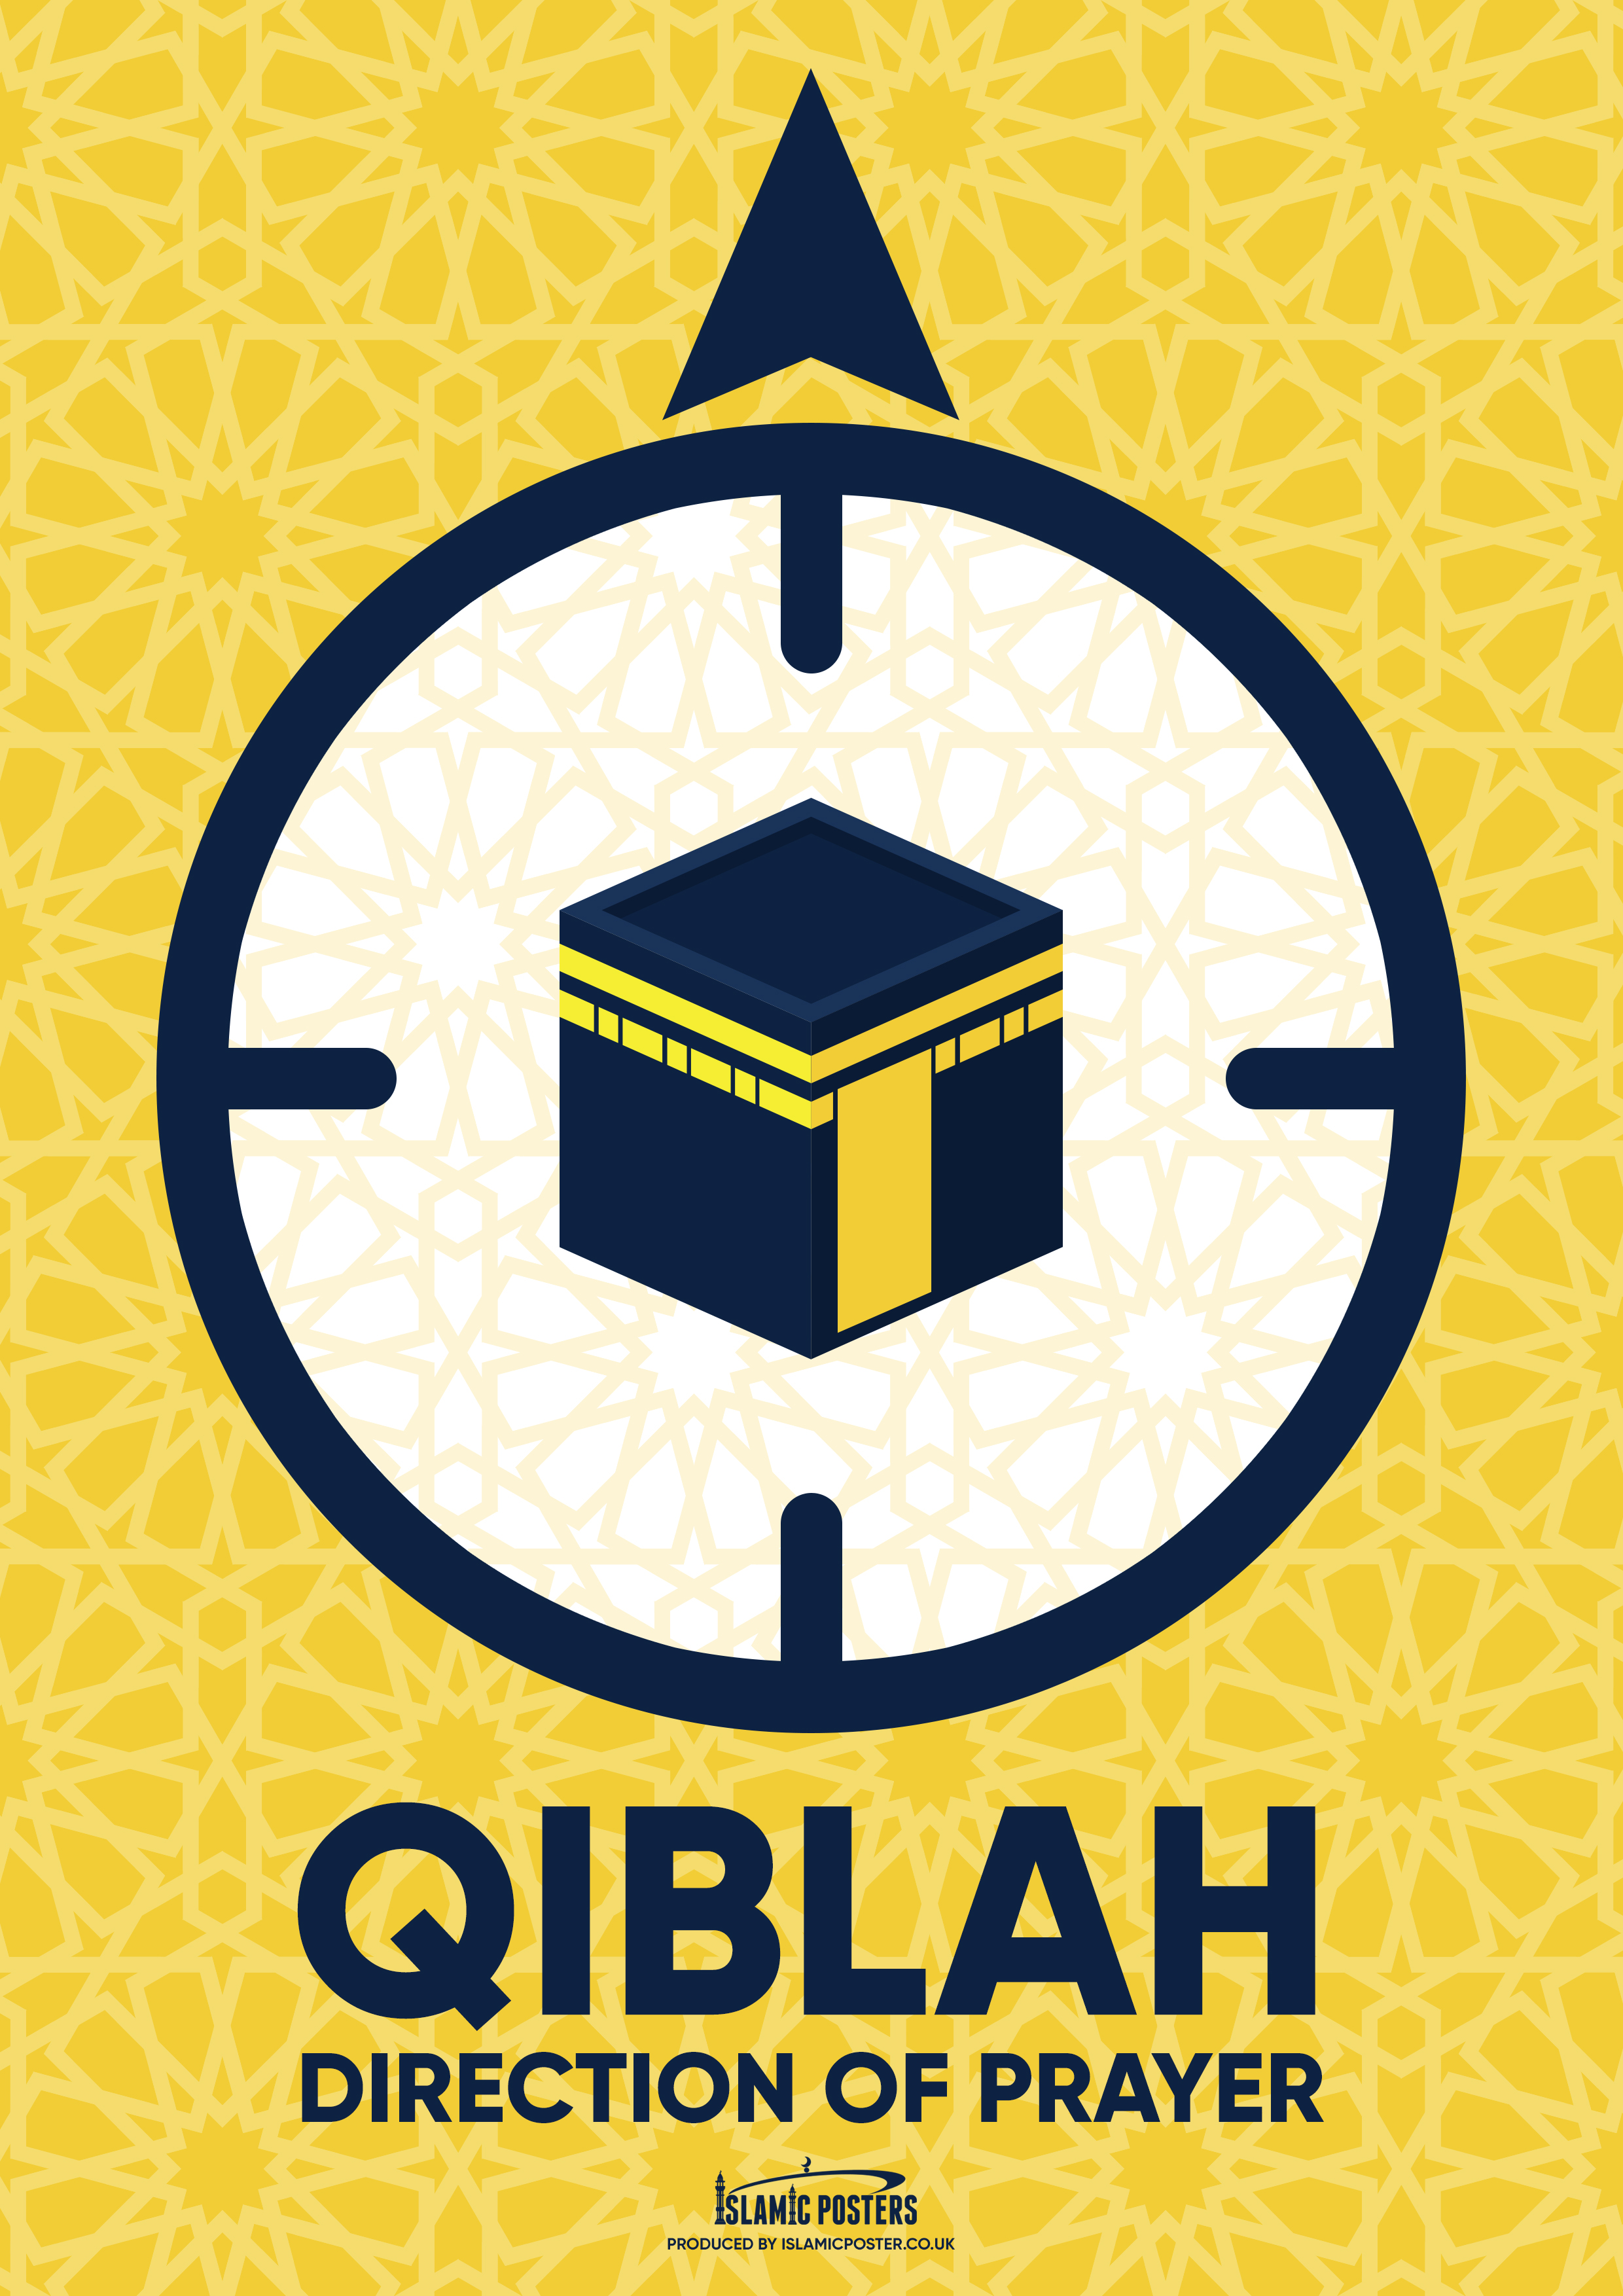 New 4 - Qiblah Pointer Poster By Islamic Posters